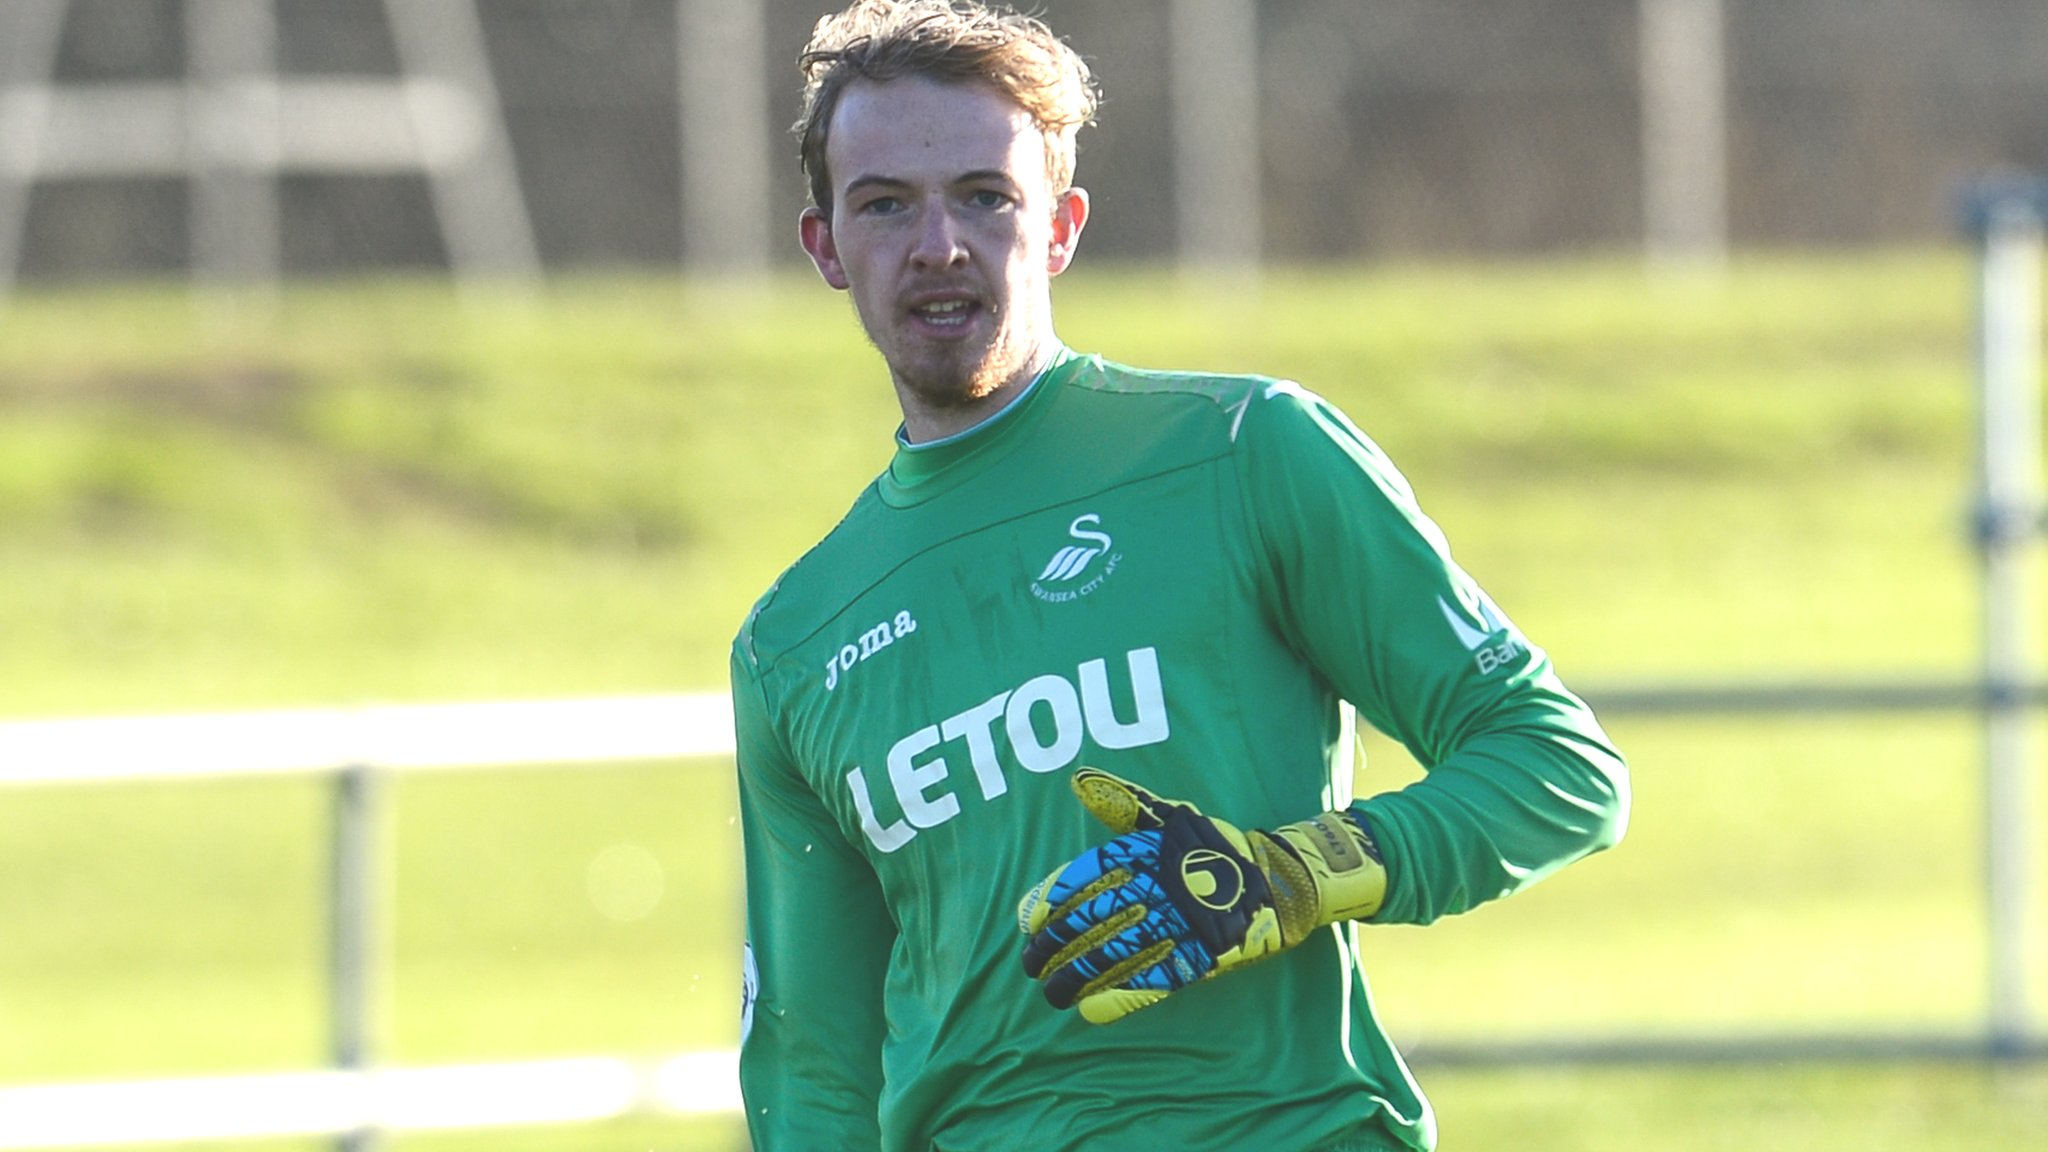 Lewis Thomas: Forest Green Rovers sign Swansea City goalkeeper